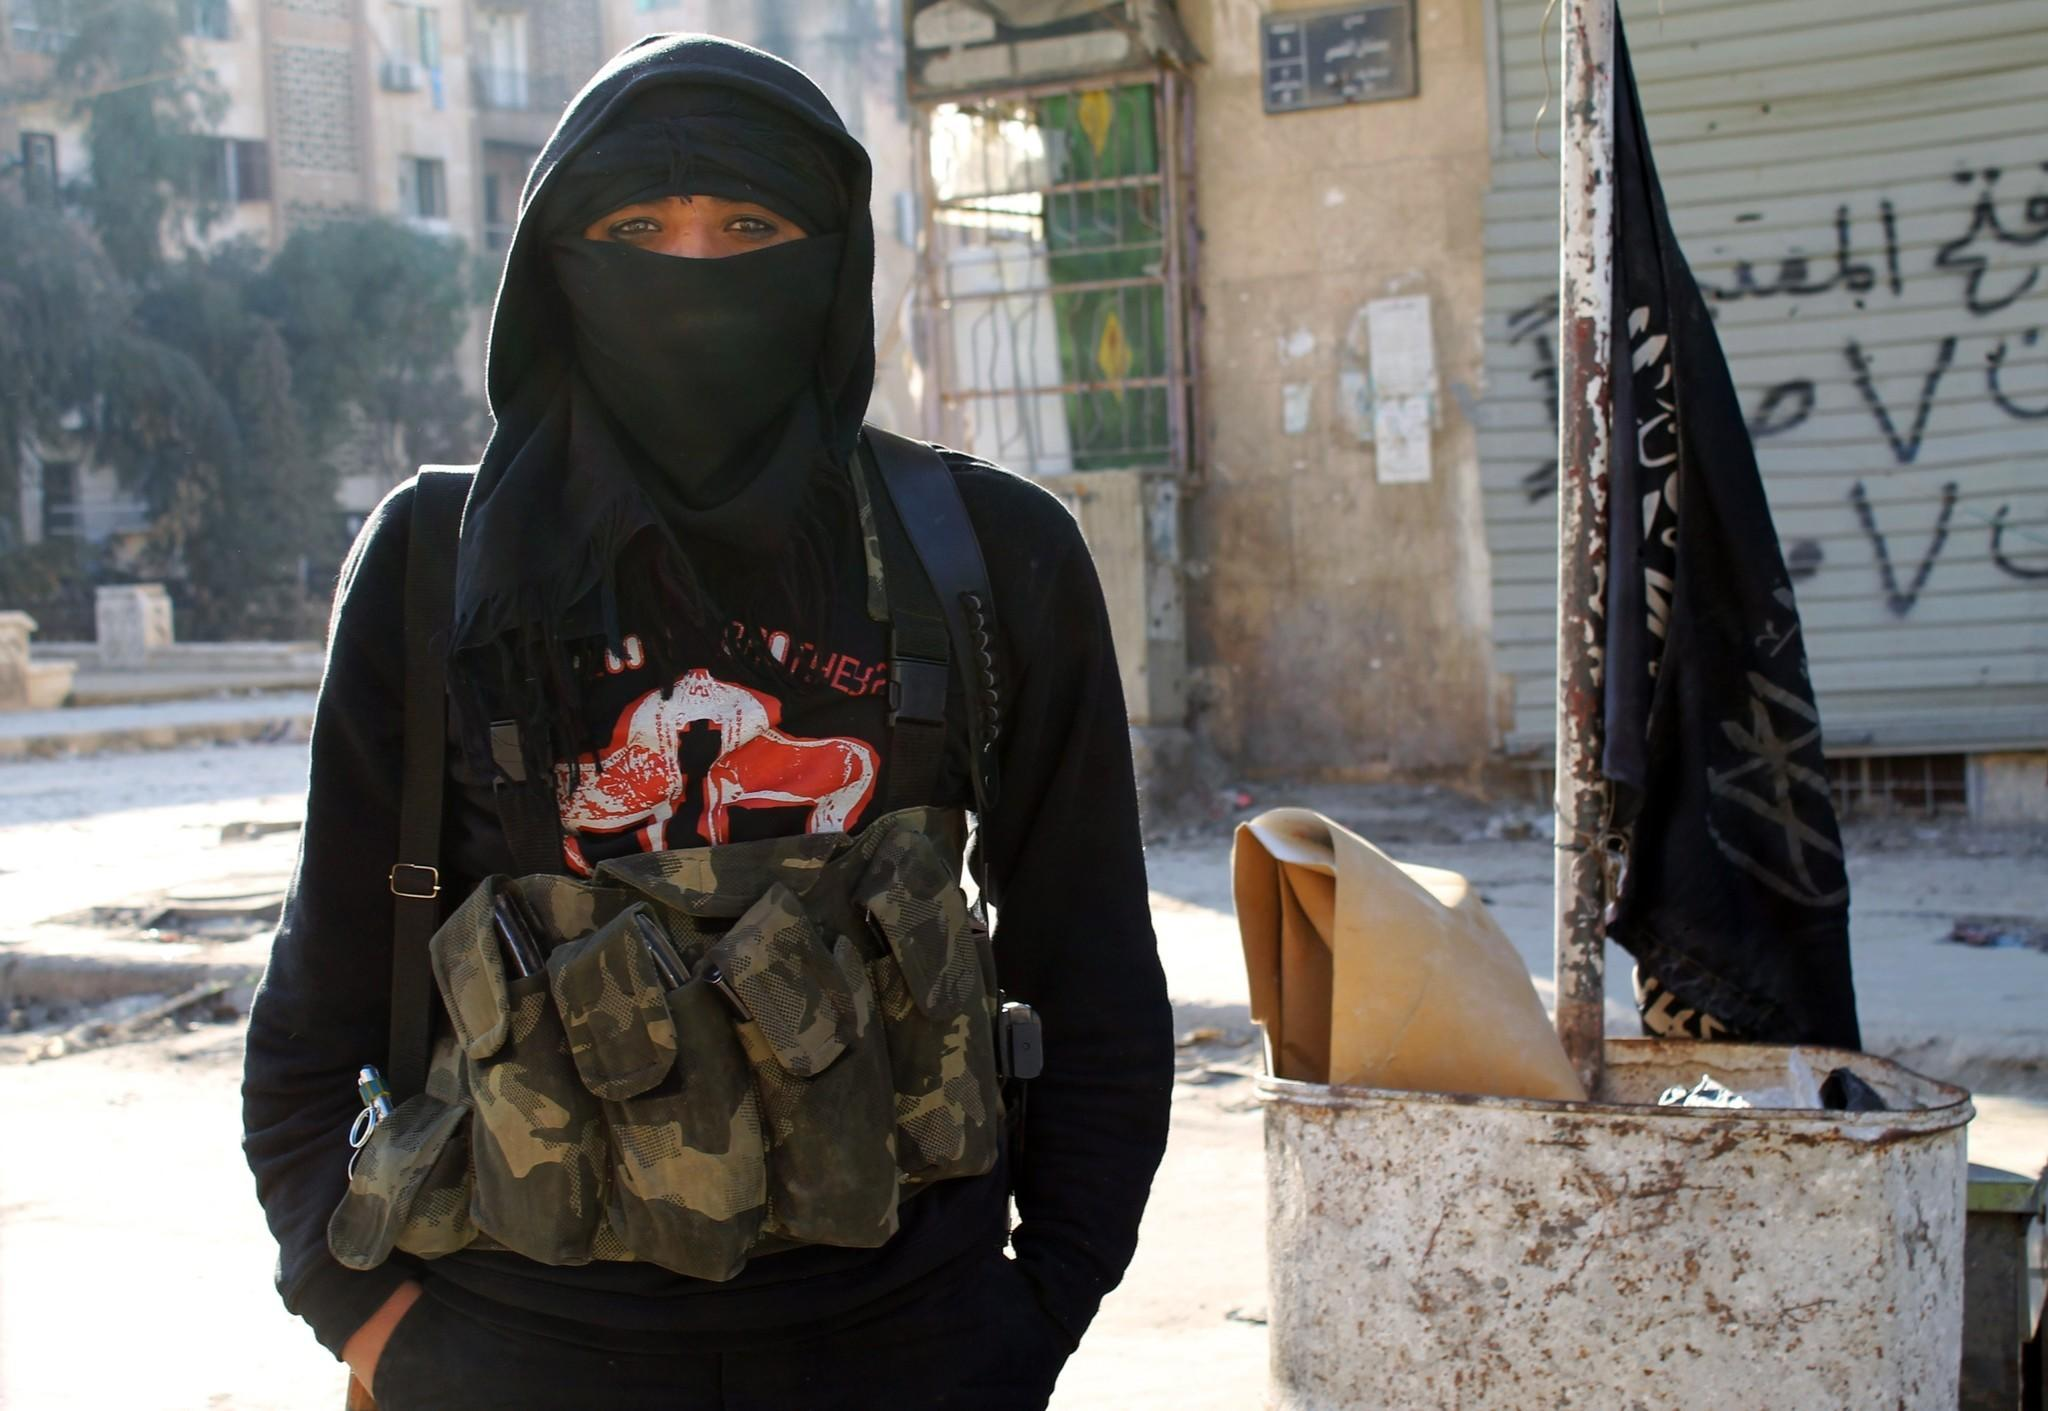 A member of the militant group Al Nusra Front stands in a street in the northern Syrian city of Aleppo last month.